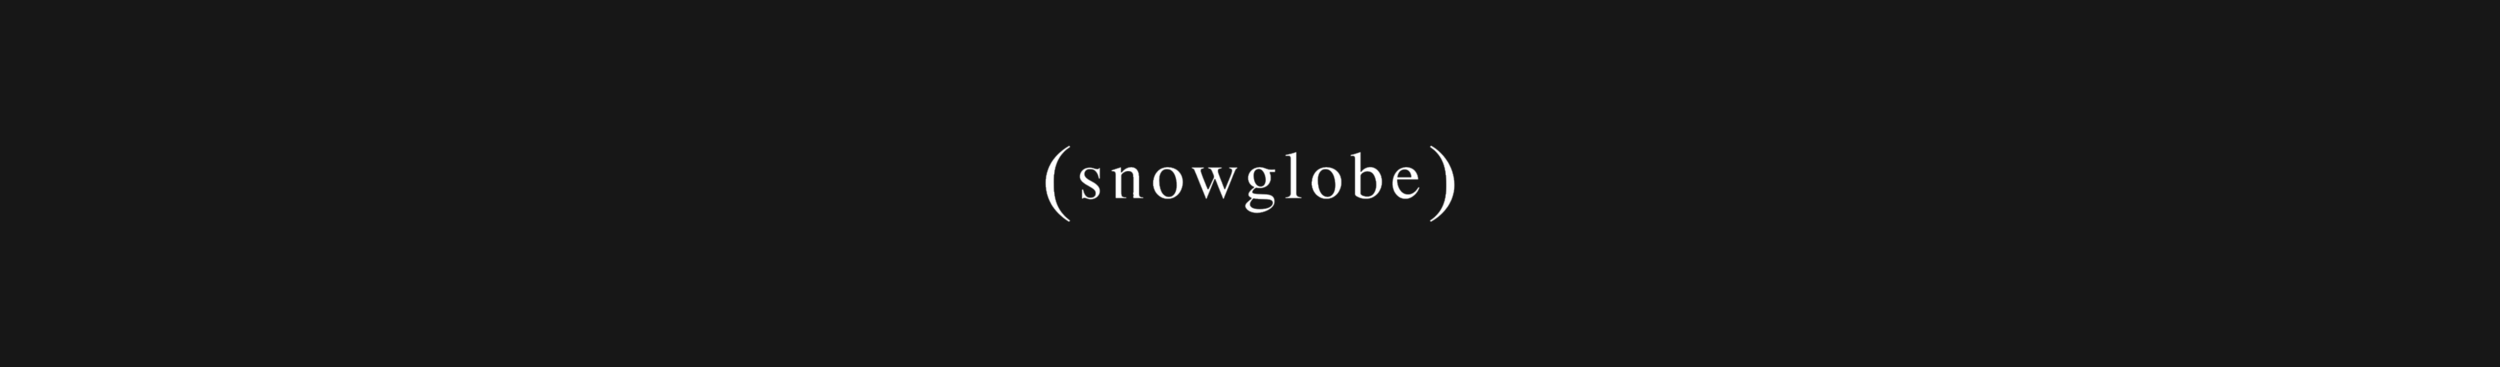 IntWebsite_Clients_White_Snowglobe_01.png